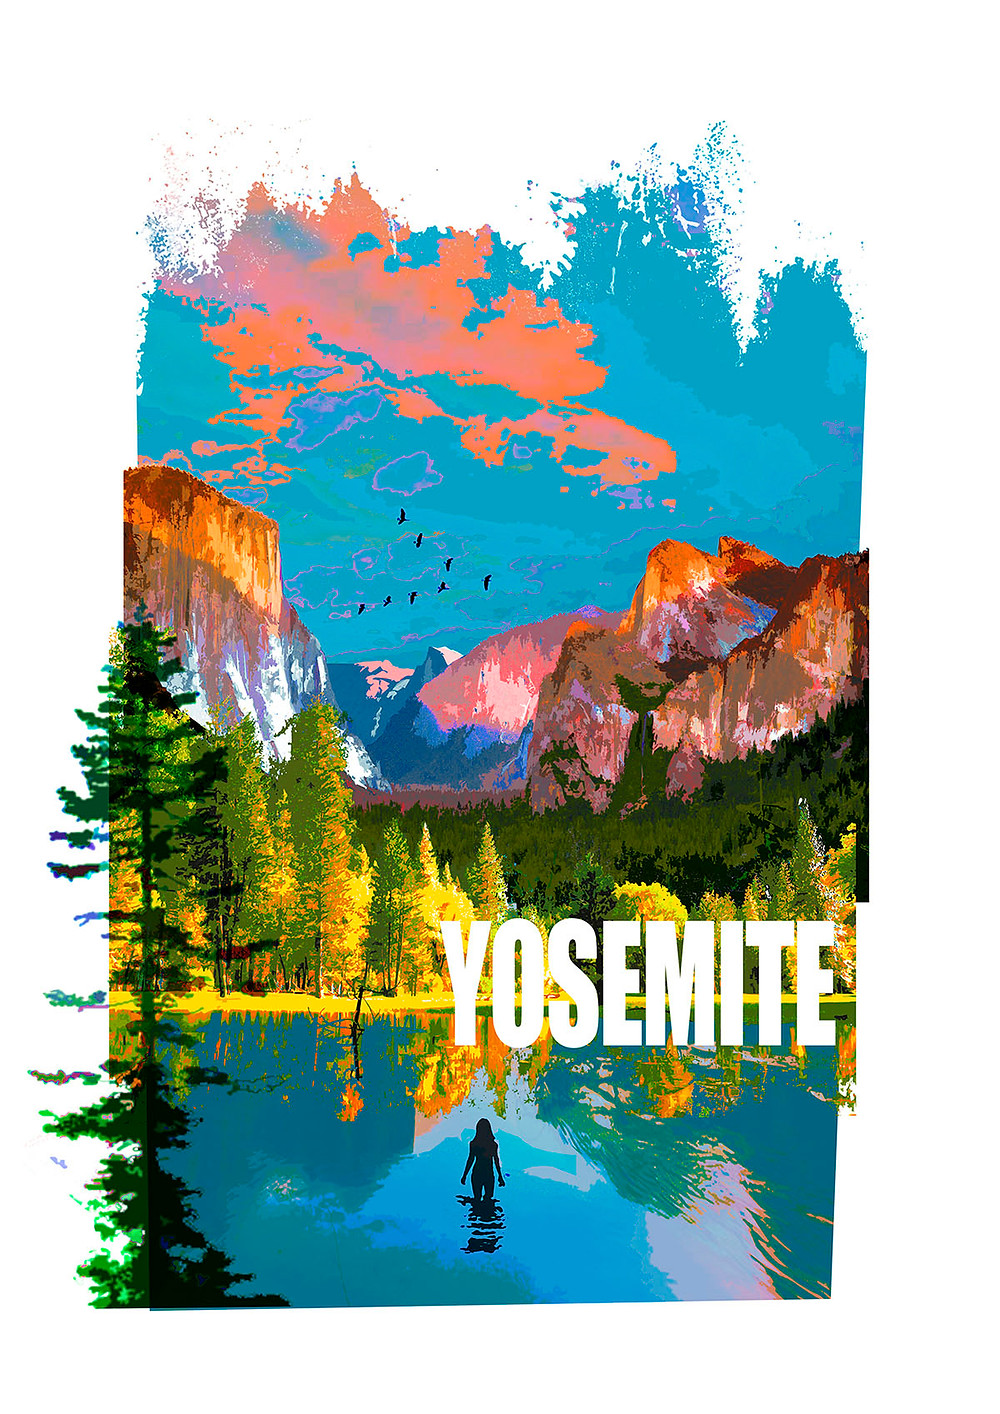 A digital illustrated portrait of Yosemite National Park